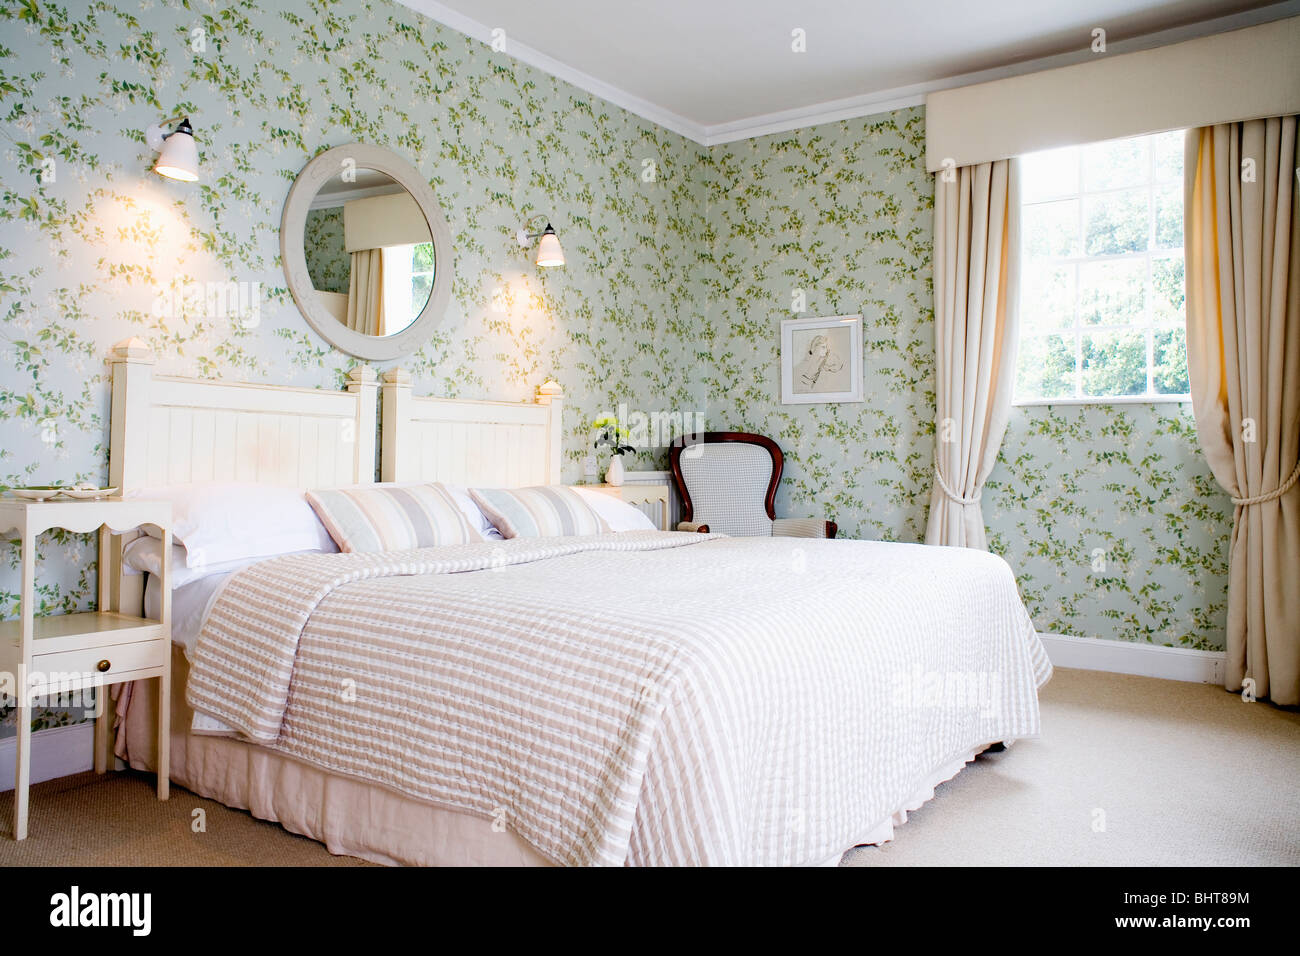 Lights On Wall Over Bed : Wall-lights above bed with cream bed-cover in traditional country Stock Photo, Royalty Free ...